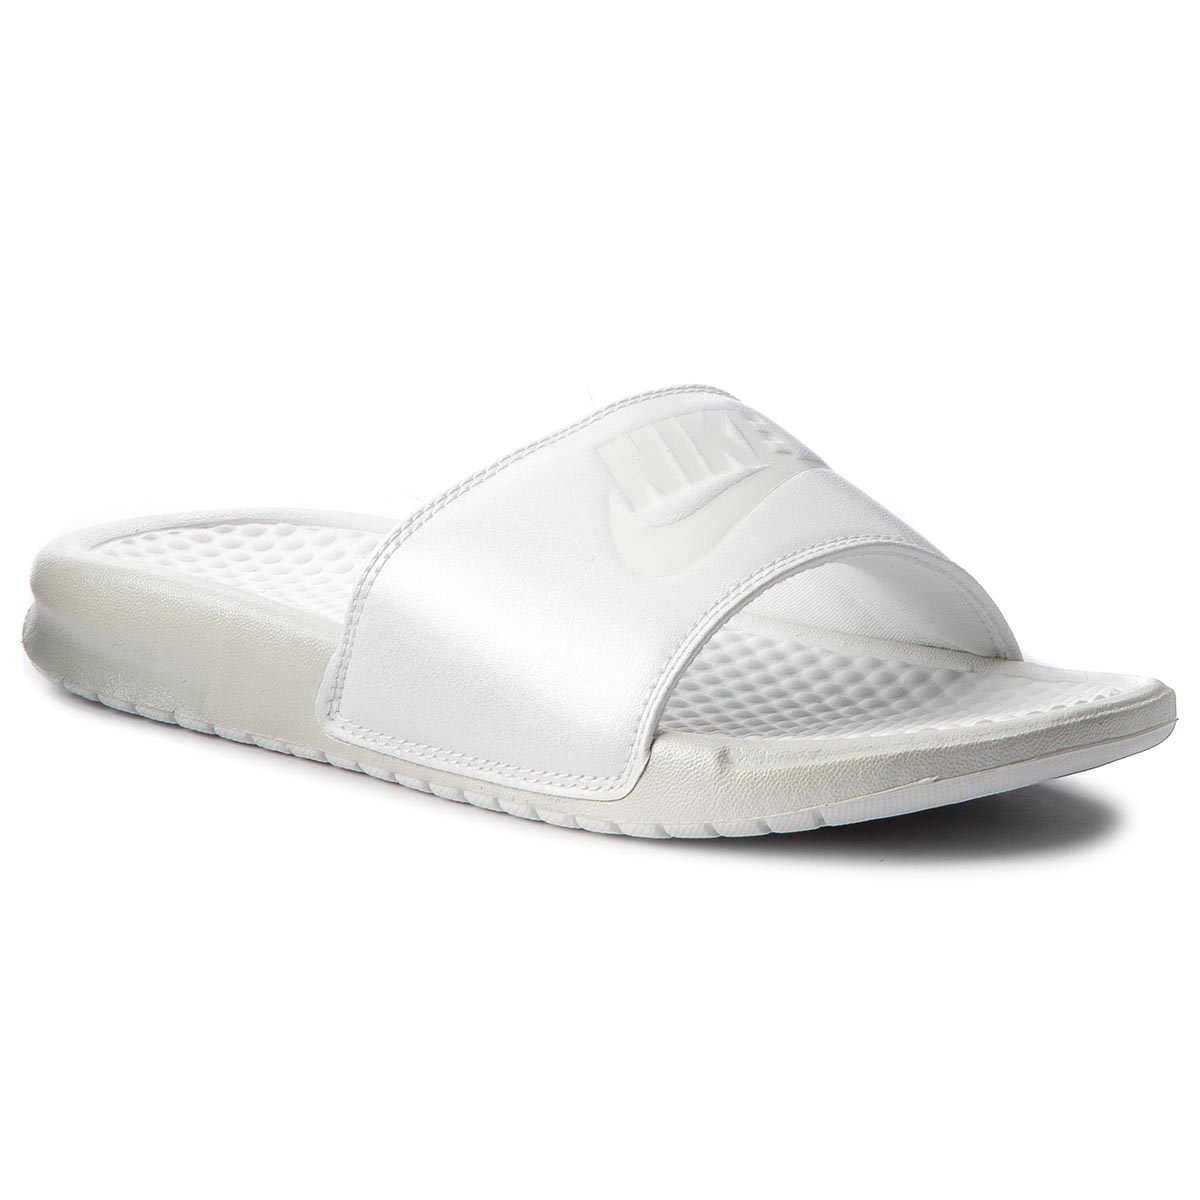 Șlapi NIKE - Benassi Jdi Metallic Qs AA4149 100 Mtlc Summit Wht/Summit White